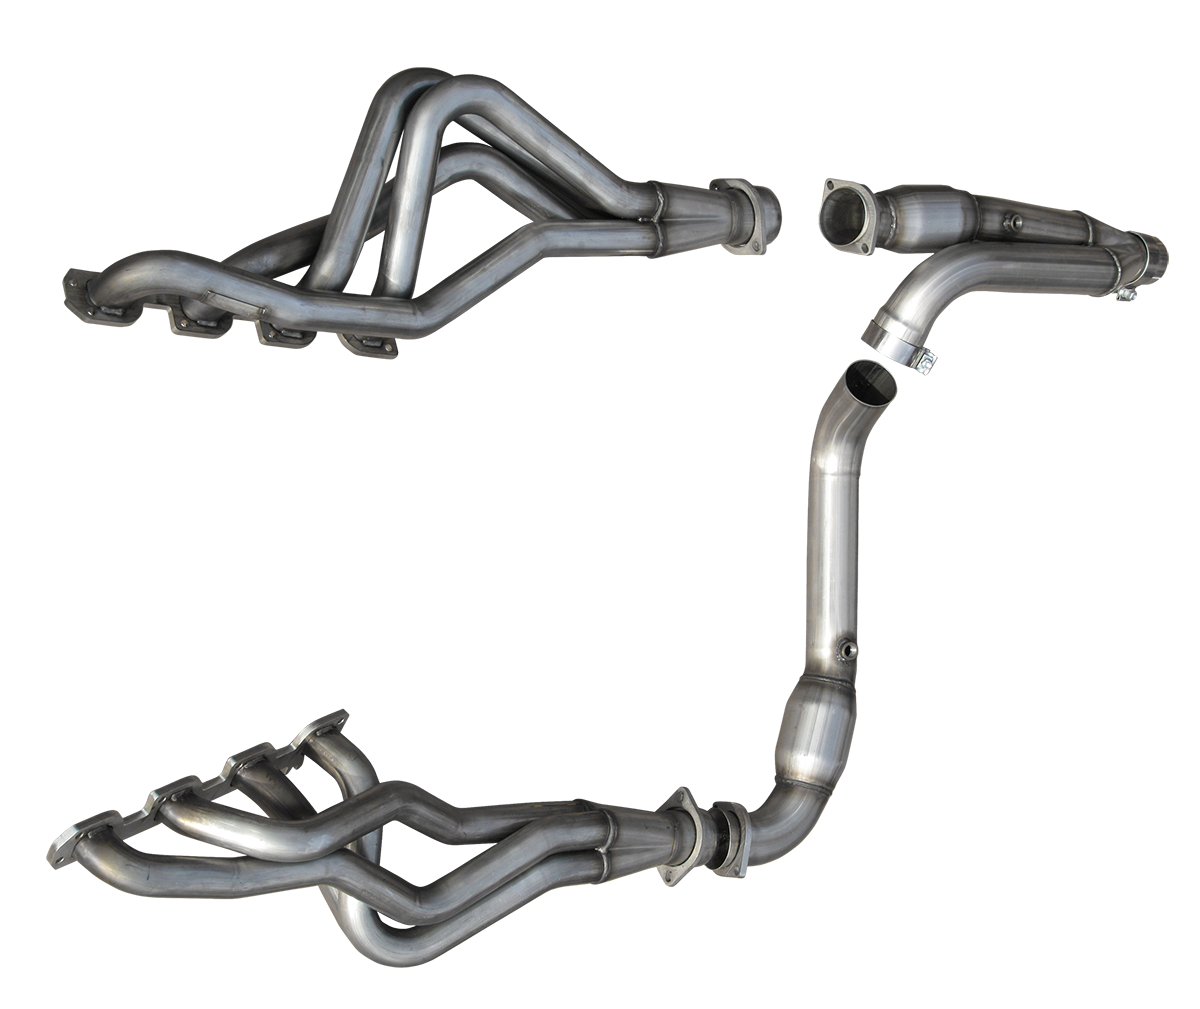 "2006-2008 Dodge Ram 1500 American Racing Headers 1 3/4"" x 3"" Long Tube Headers w/3"" Ypipe, No Cats & Pure Thunder Exhaust System"